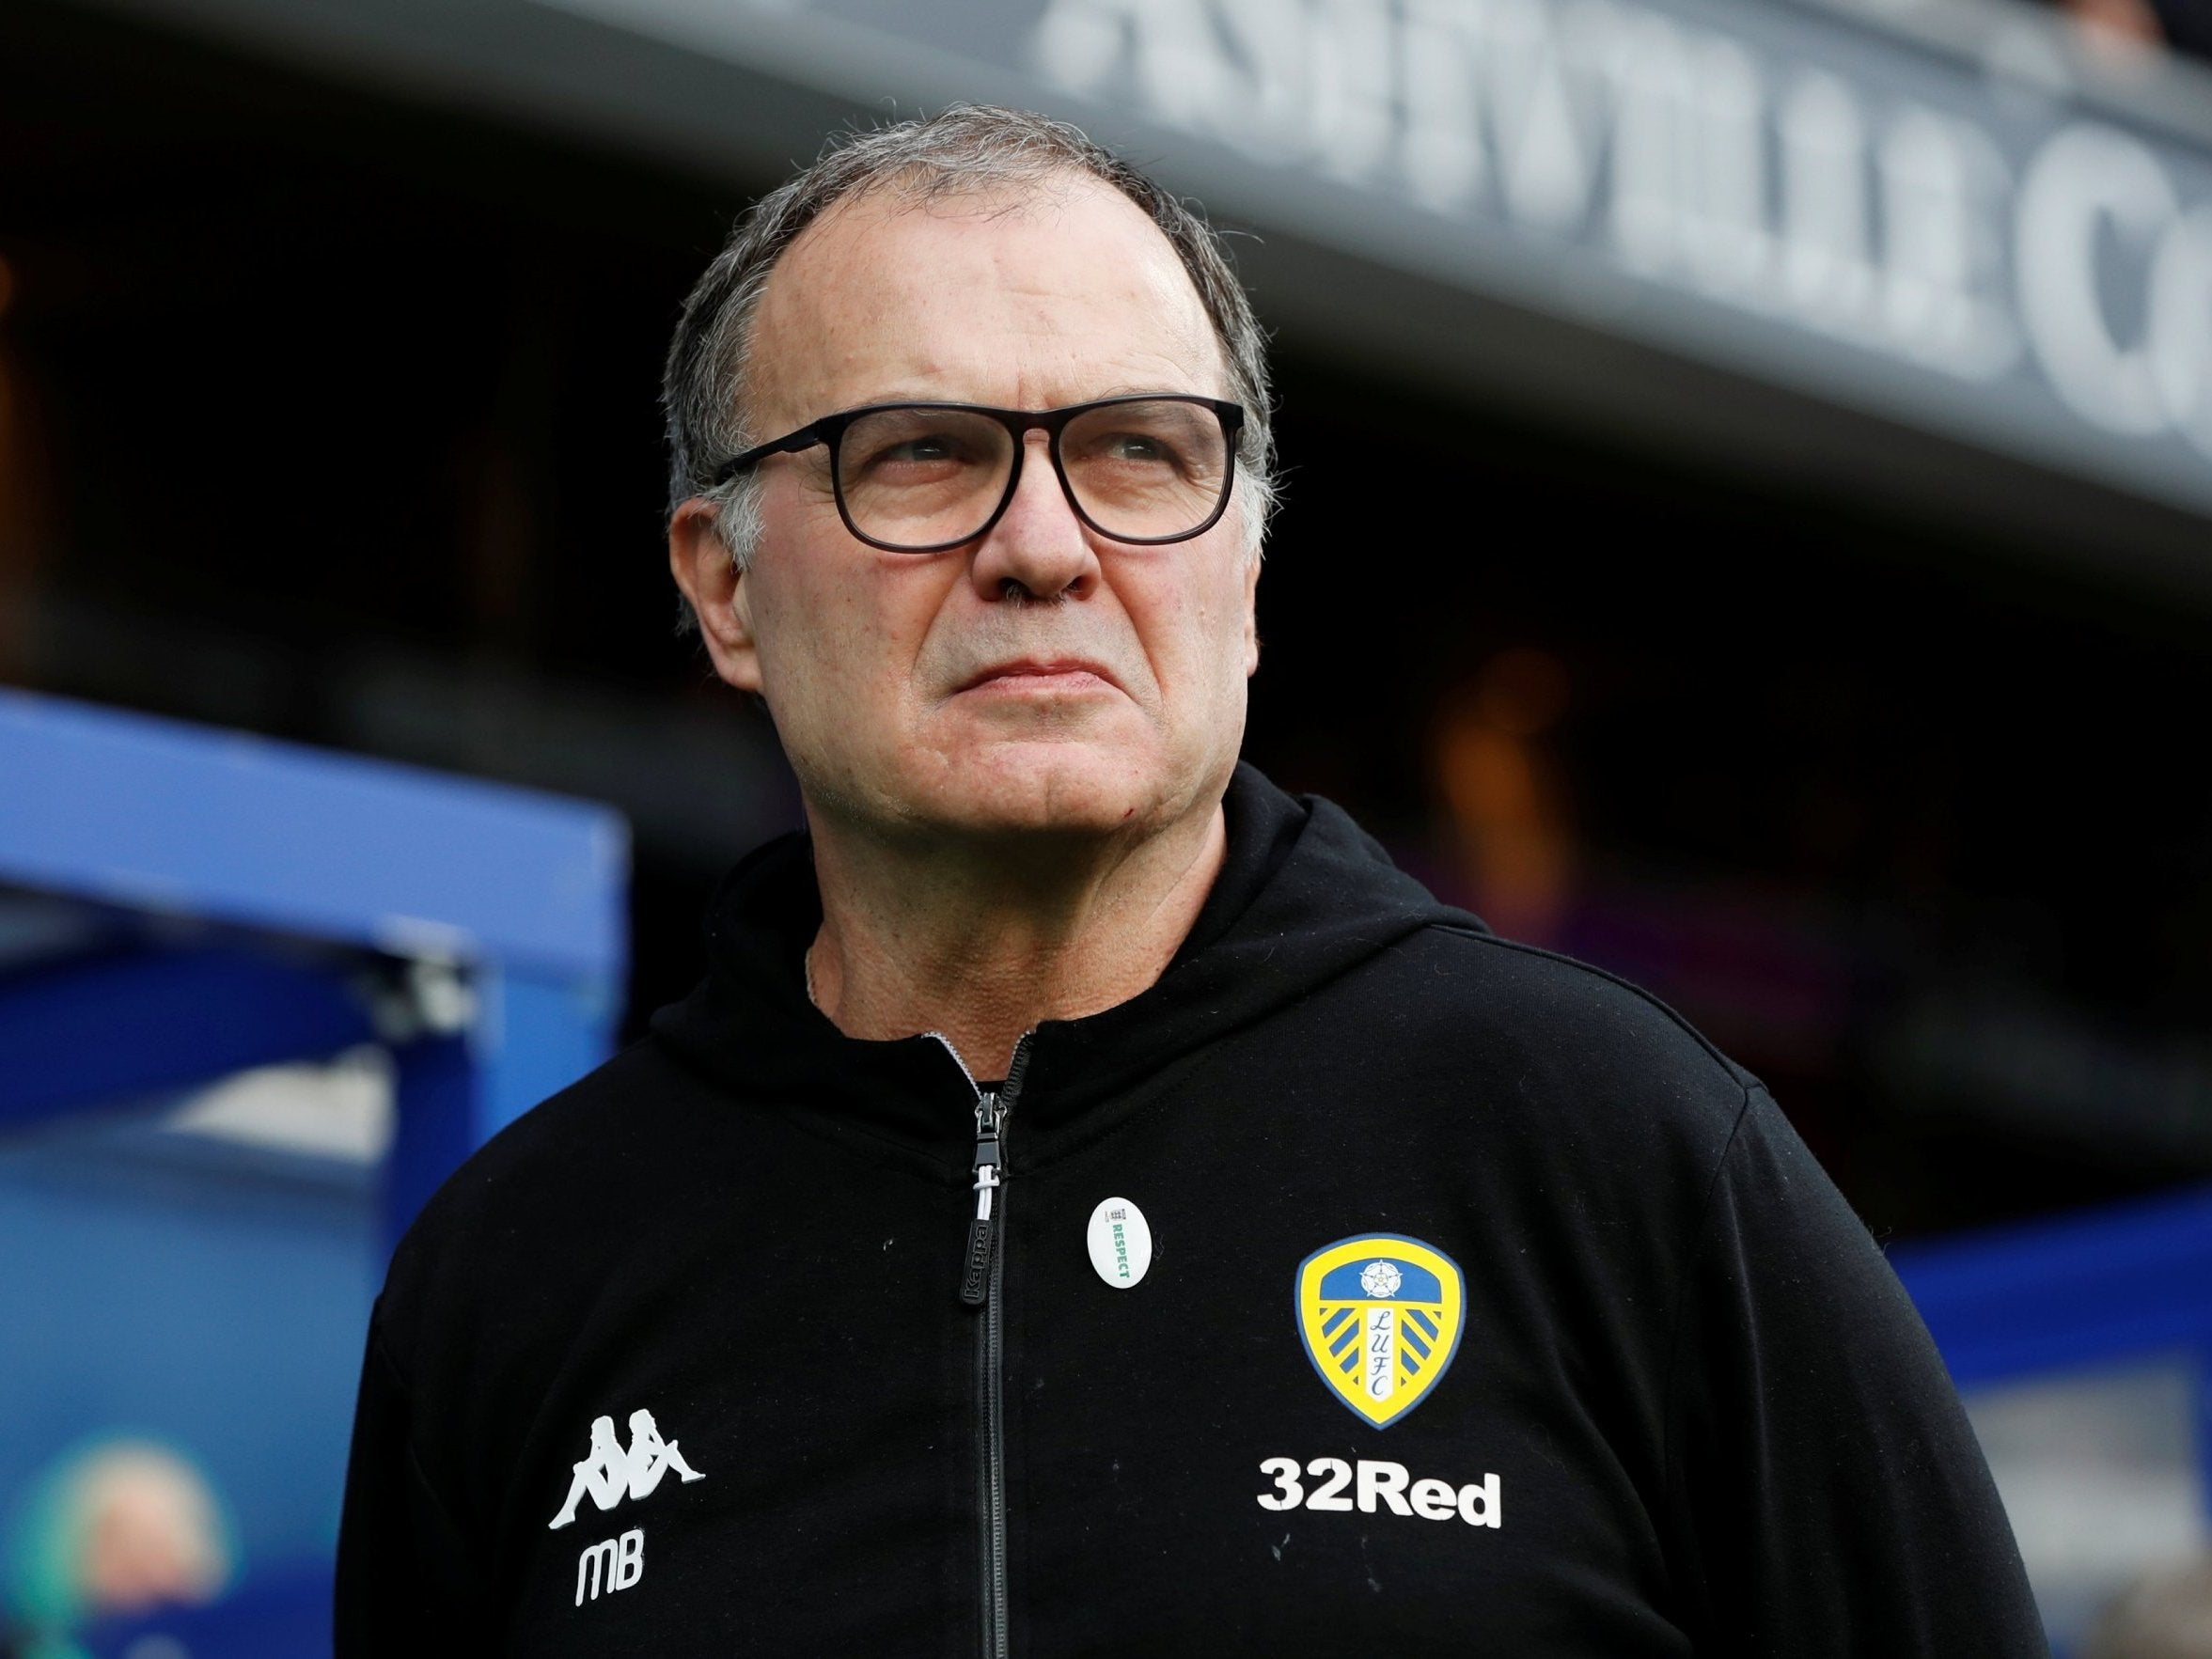 Leeds vs Derby: Marcelo Bielsa takes full responsibility for spying incident